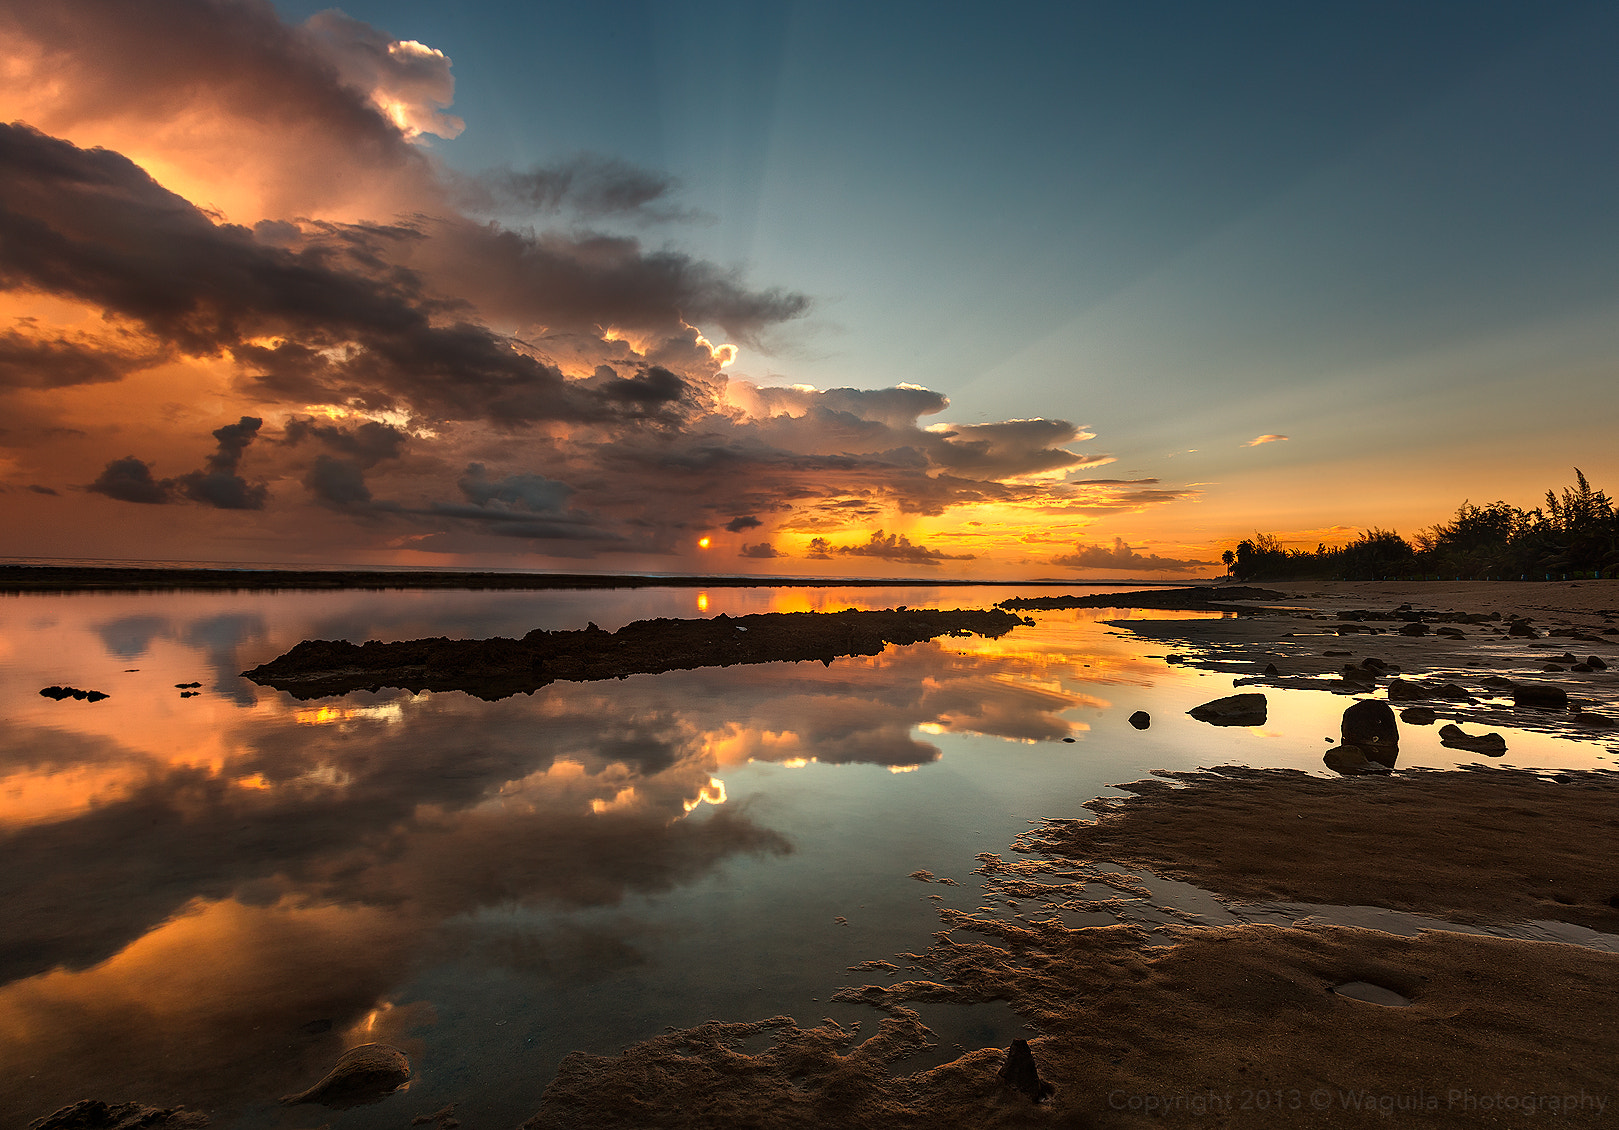 Photograph I see the light by Salim waguila on 500px